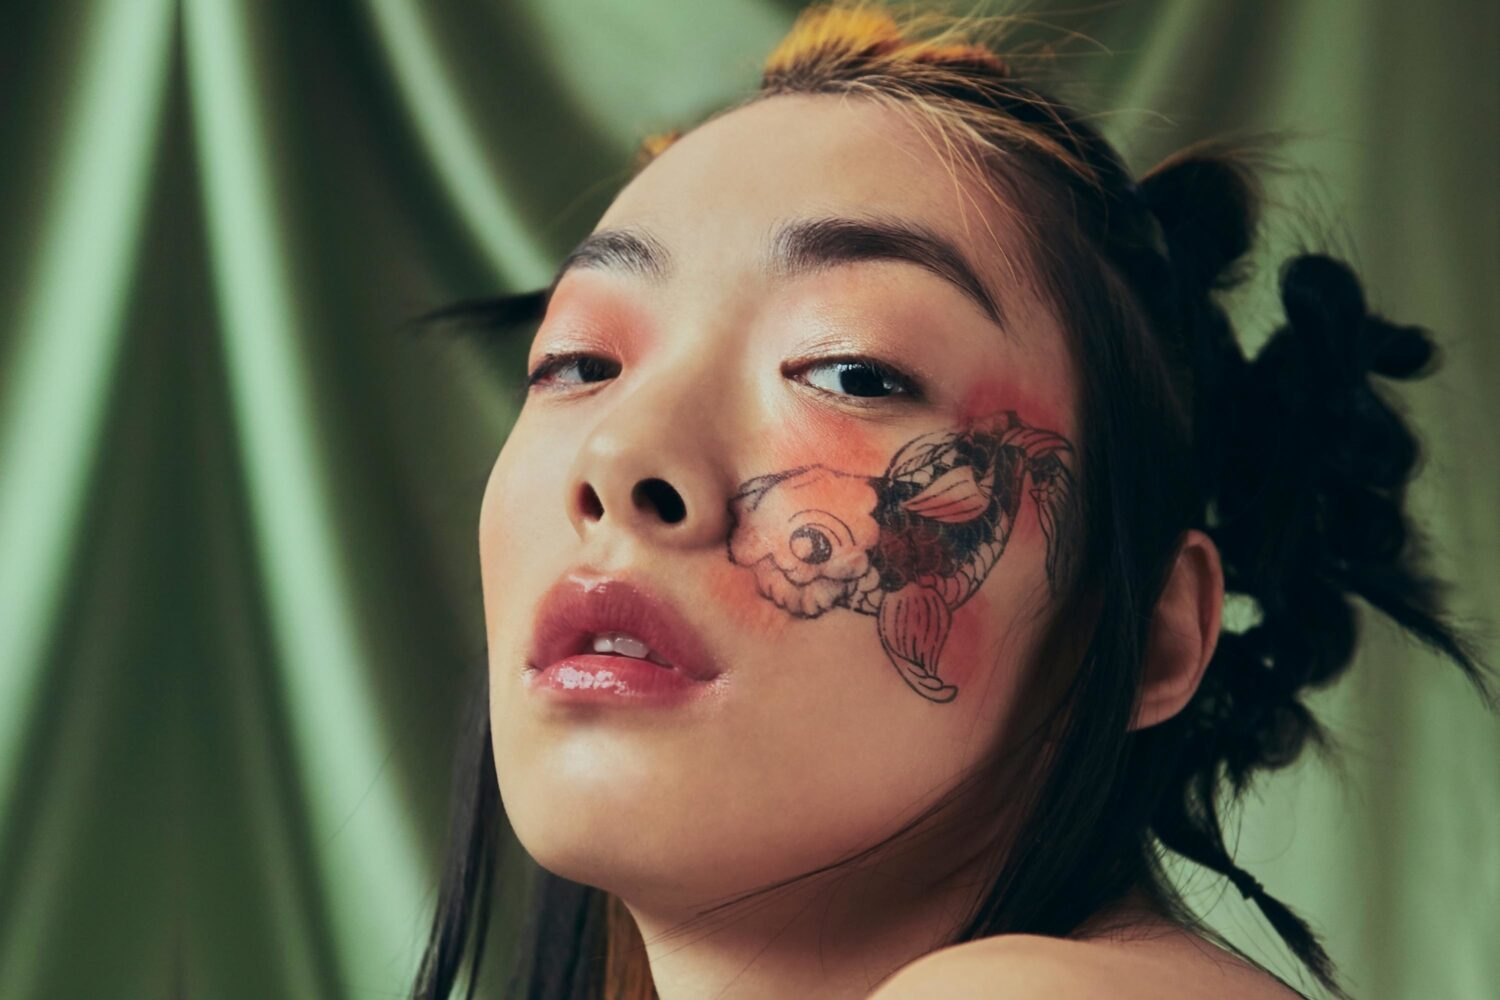 The March 2020 issue of DIY - feat. Rina Sawayama, Sorry, Biffy Clyro & more - is out now!